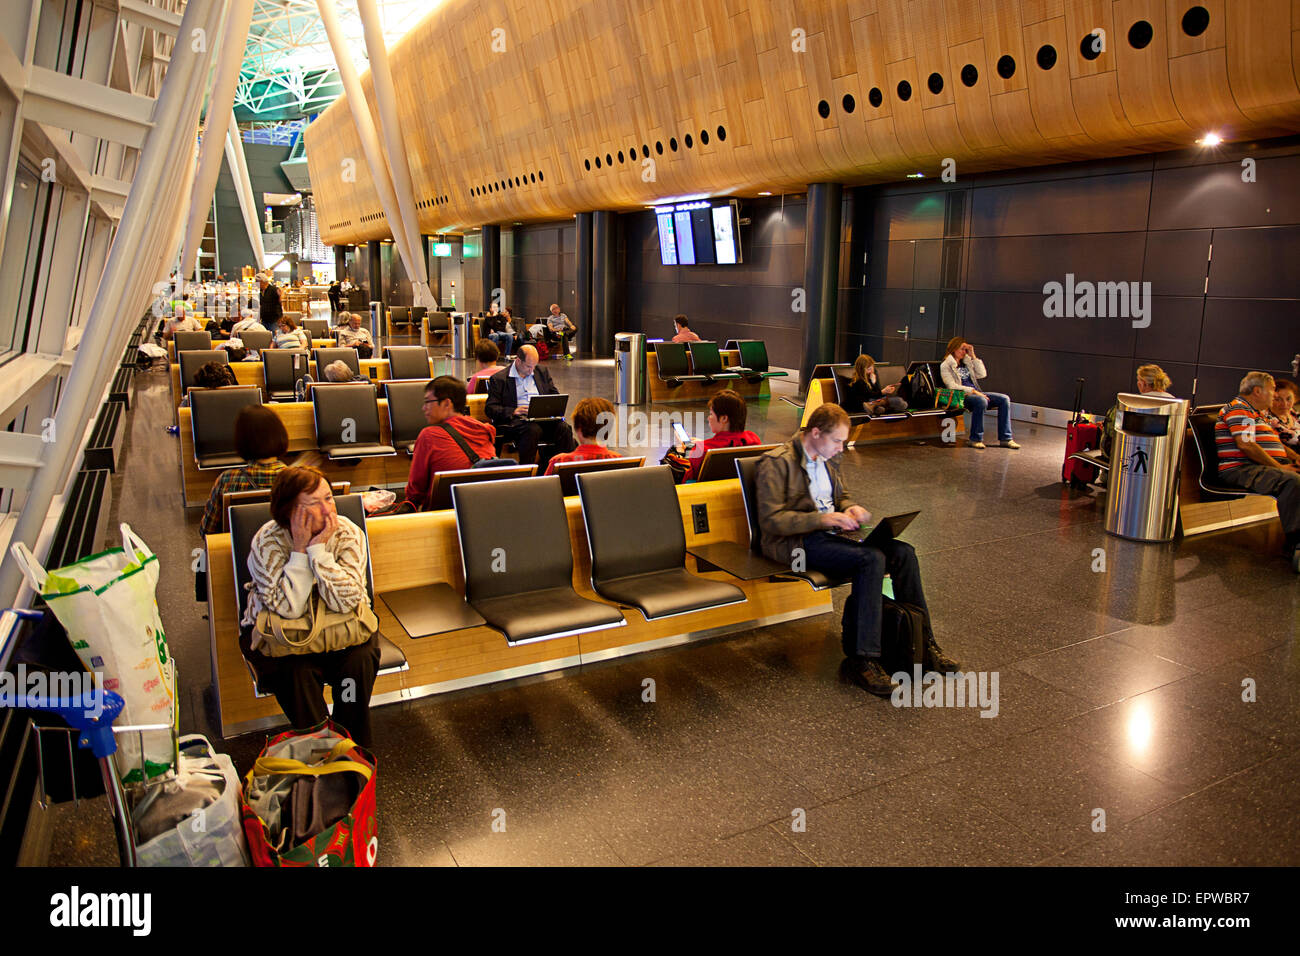 Waiting - Zürich Airport Flughafen, Zurich, Switzerland - Stock Image